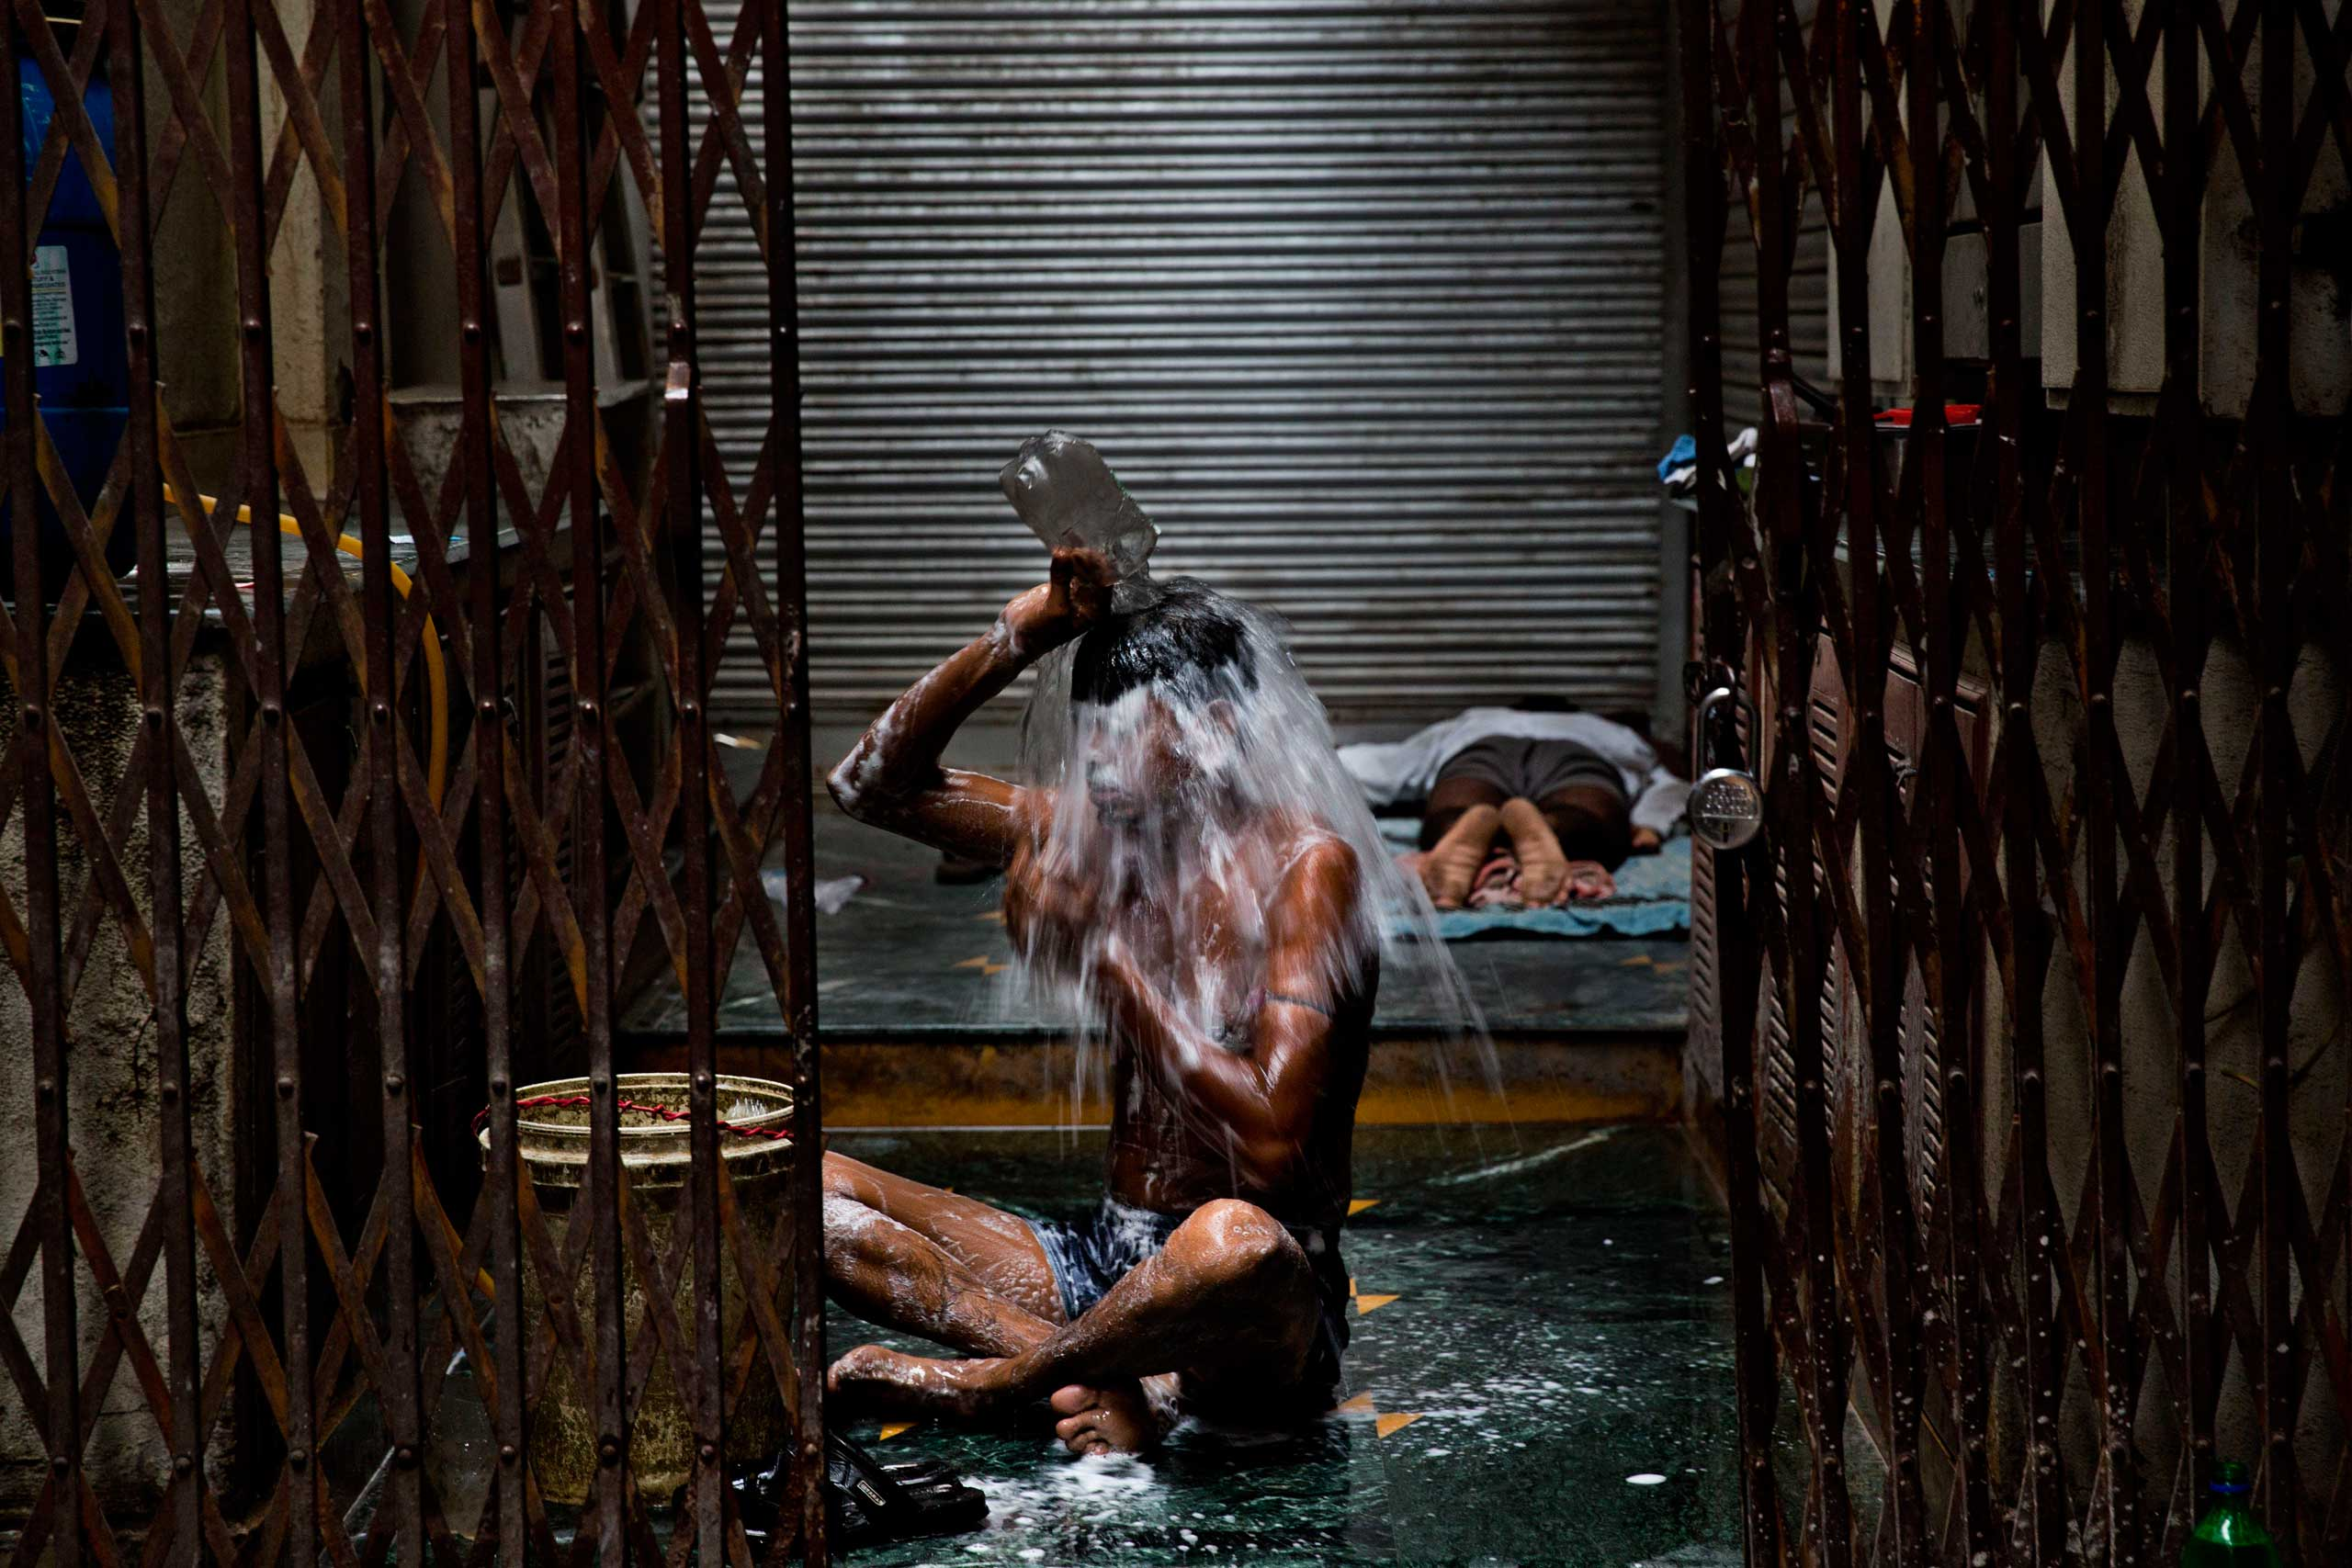 Sept. 22, 2014. An Indian homeless man takes a morning bath in the old city area of New Delhi, India.